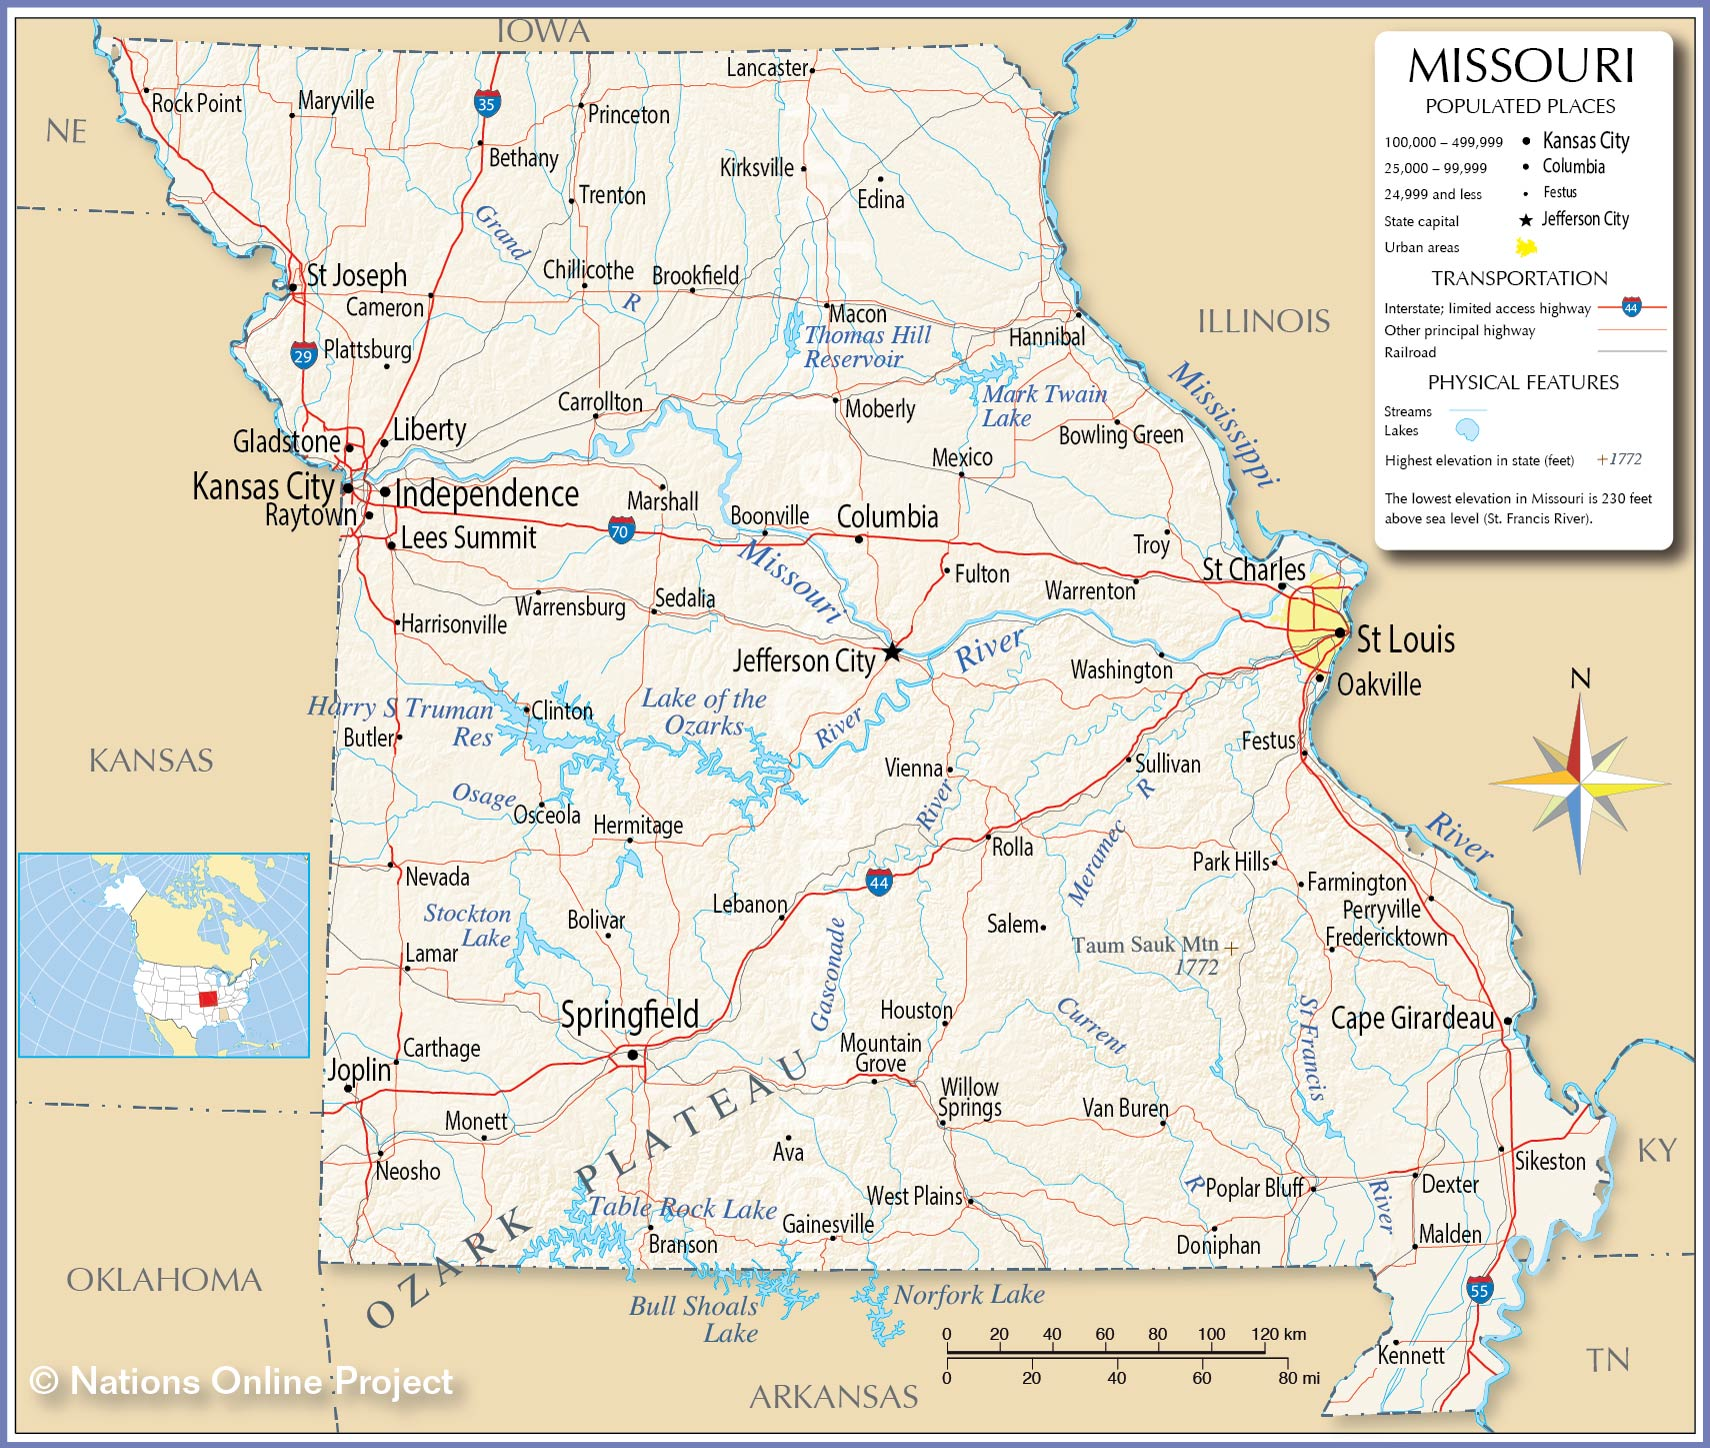 Reference Map Of Missouri USA Nations Online Project - Missouri state map usa